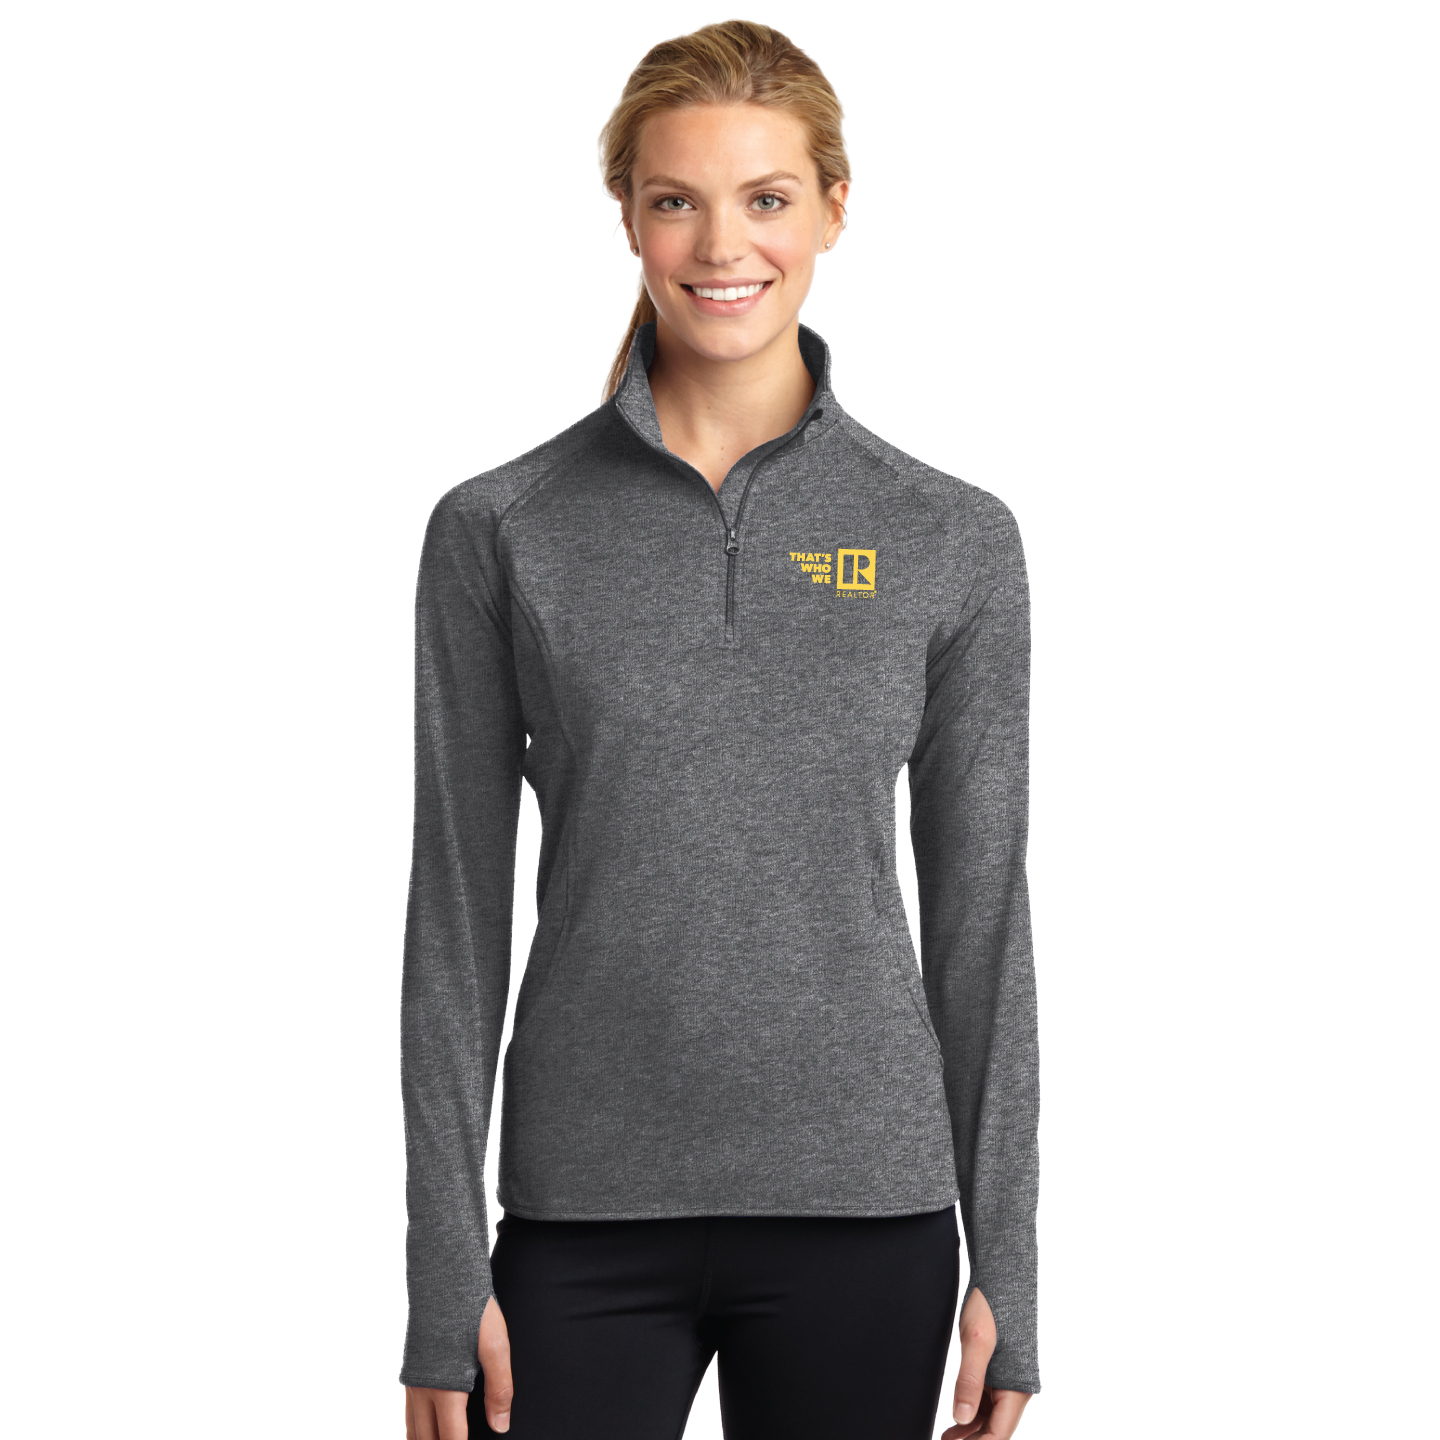 """That's Who We R"" Ladies Sport Stretch 1/2 Zip Pullover twwr,ThatsWhoWeR,That's,TWWR,ThatWho,That'sWho,Twwr,Thats,Whos,We,Ares,TWWR,Thats,Whos,Are,Pullover,Fleece,Long Sleeve"